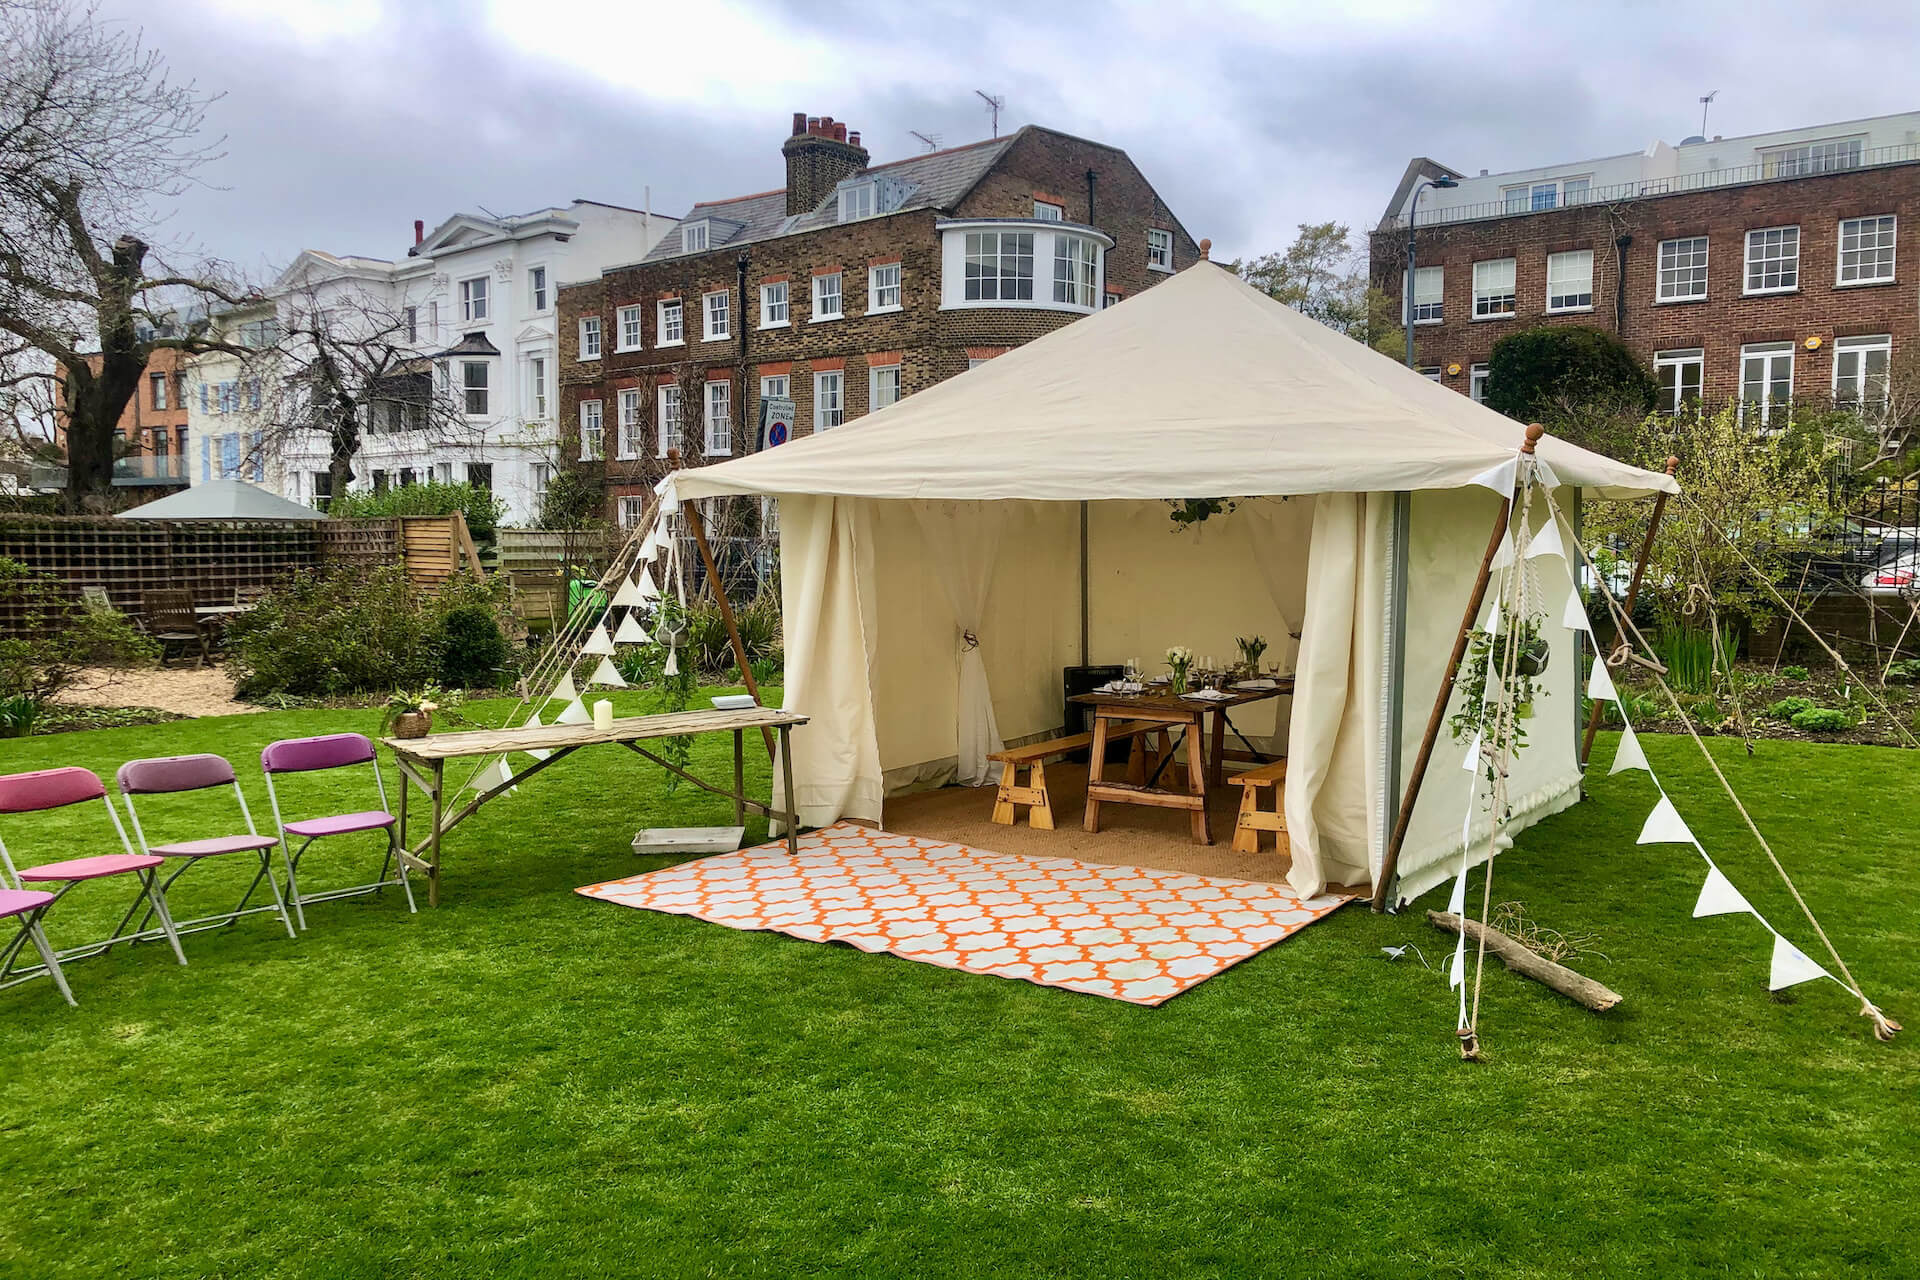 Family lunch party in london garden in a pcinic tent